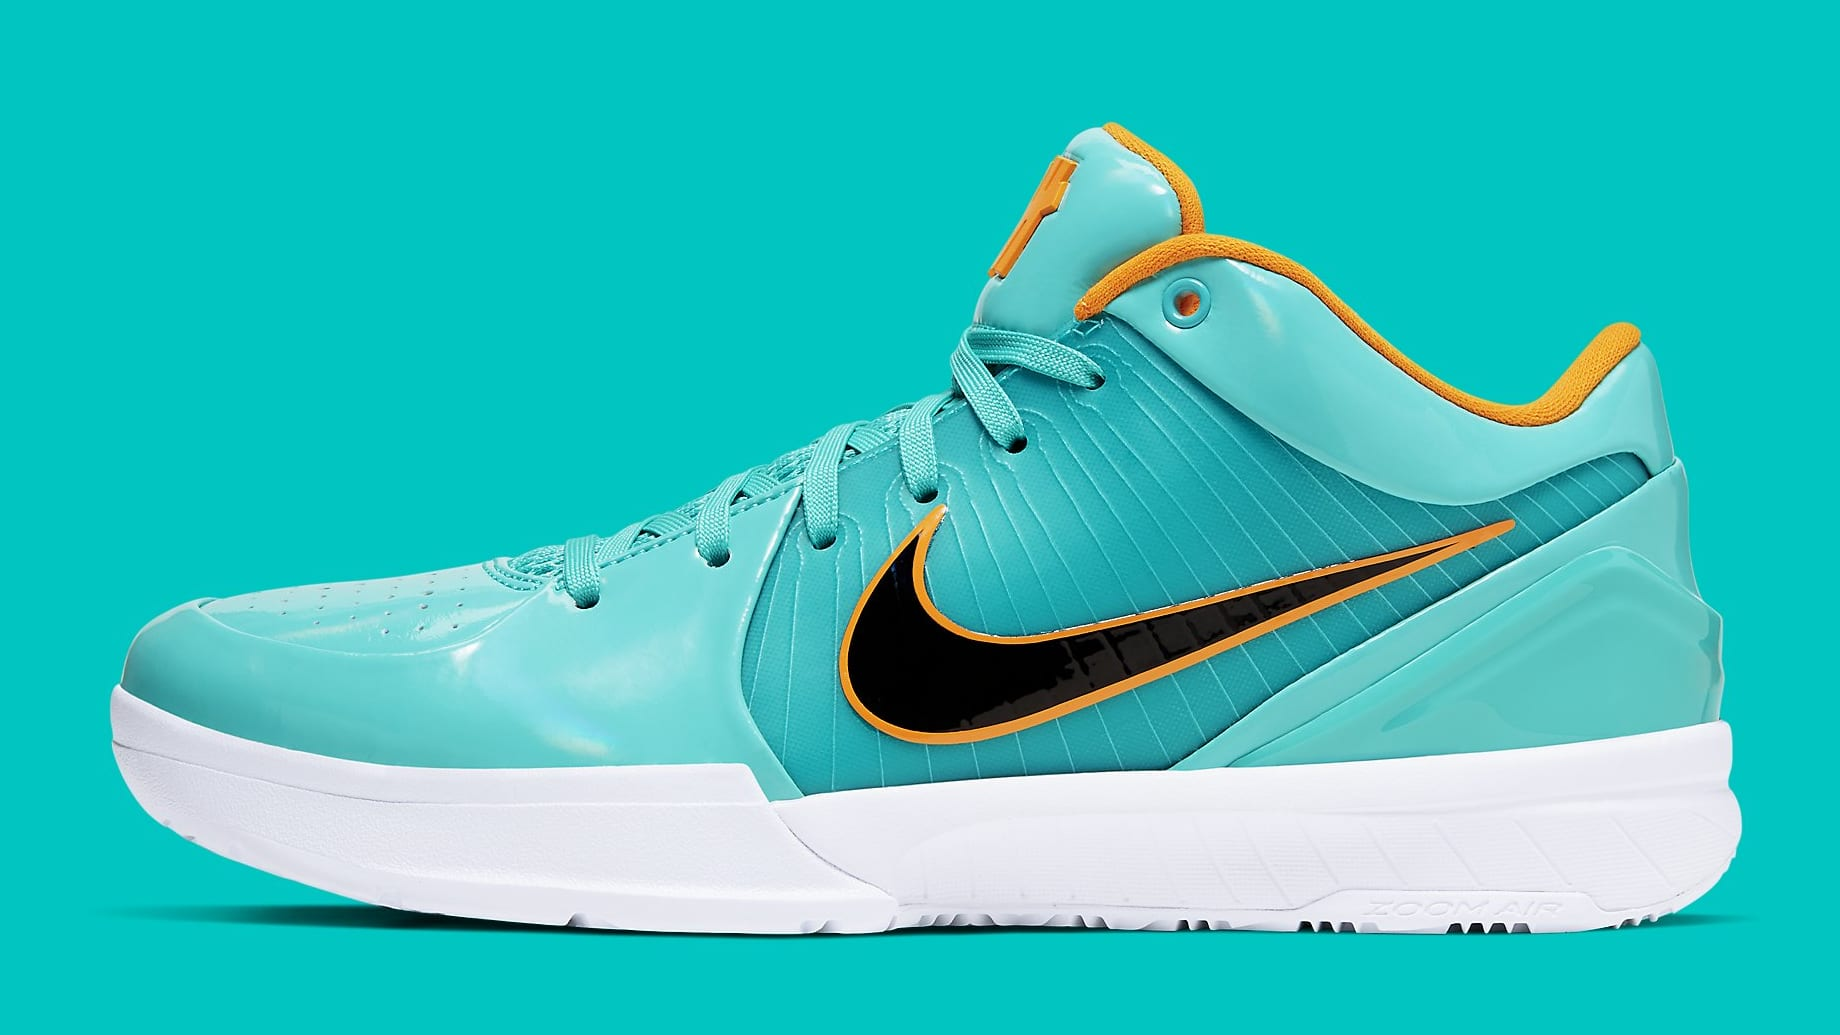 UNDFTD x Nike Kobe 4 Protro Teal Release Date CQ38869-300 Profile